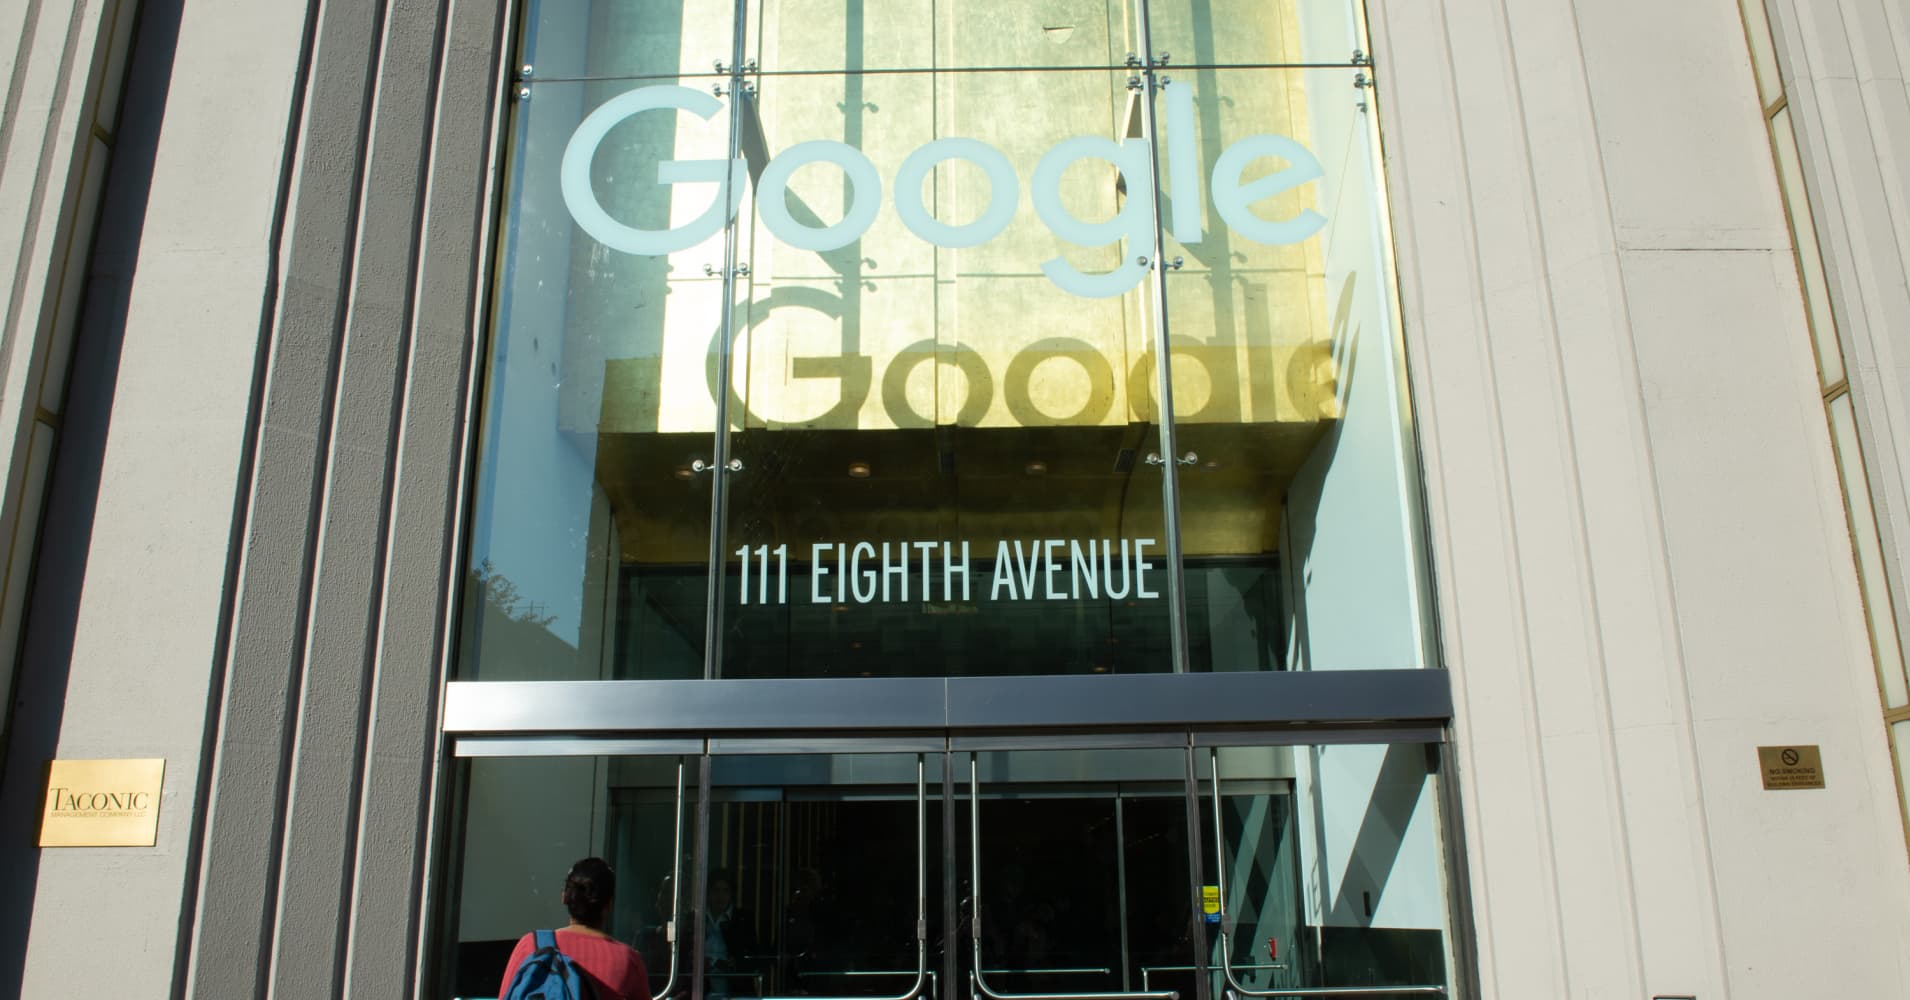 Google reportedly plans to significantly expand its New York City presence